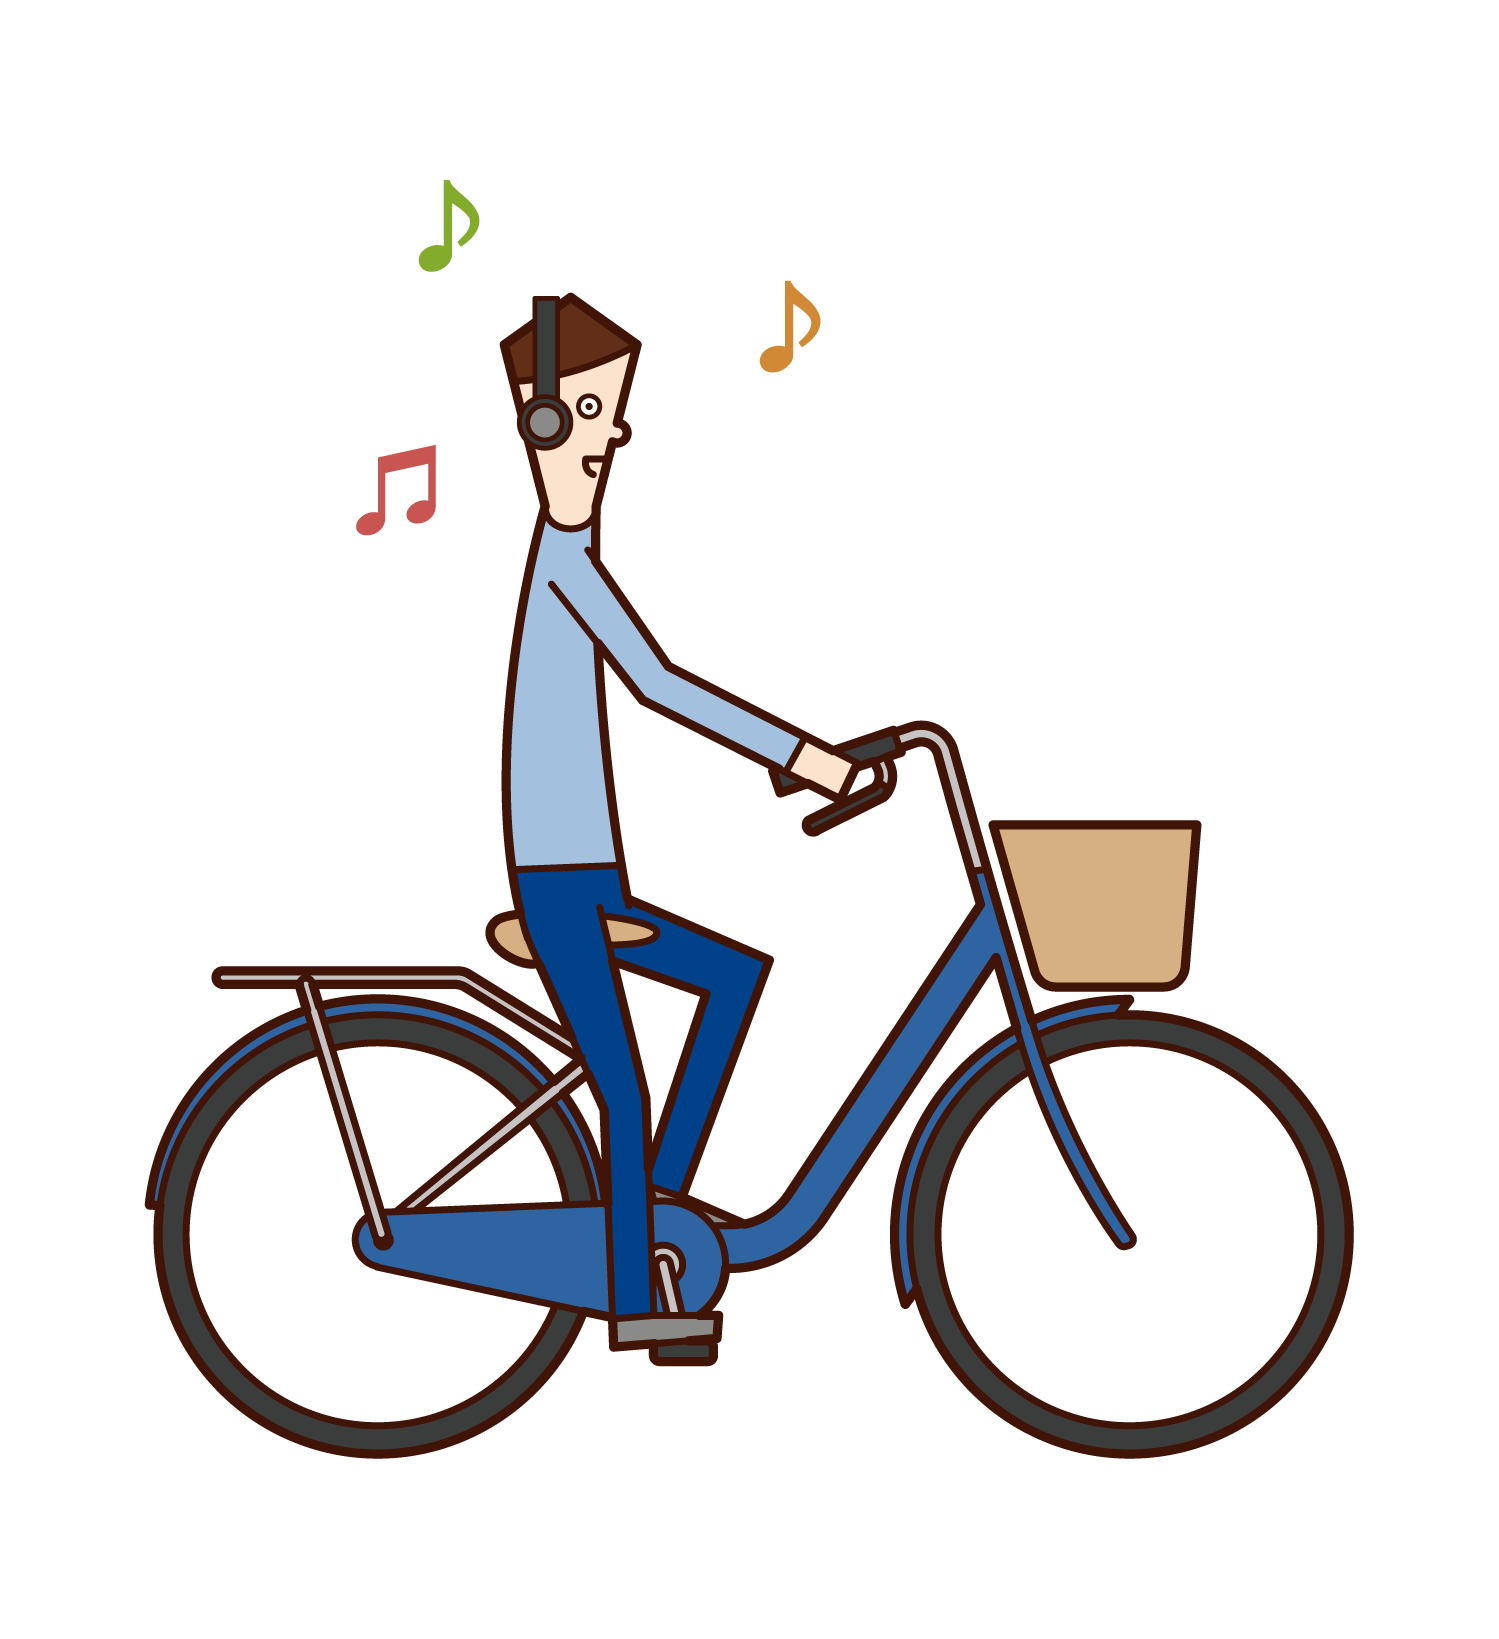 Illustration of a man who listens to music but rides a bicycle